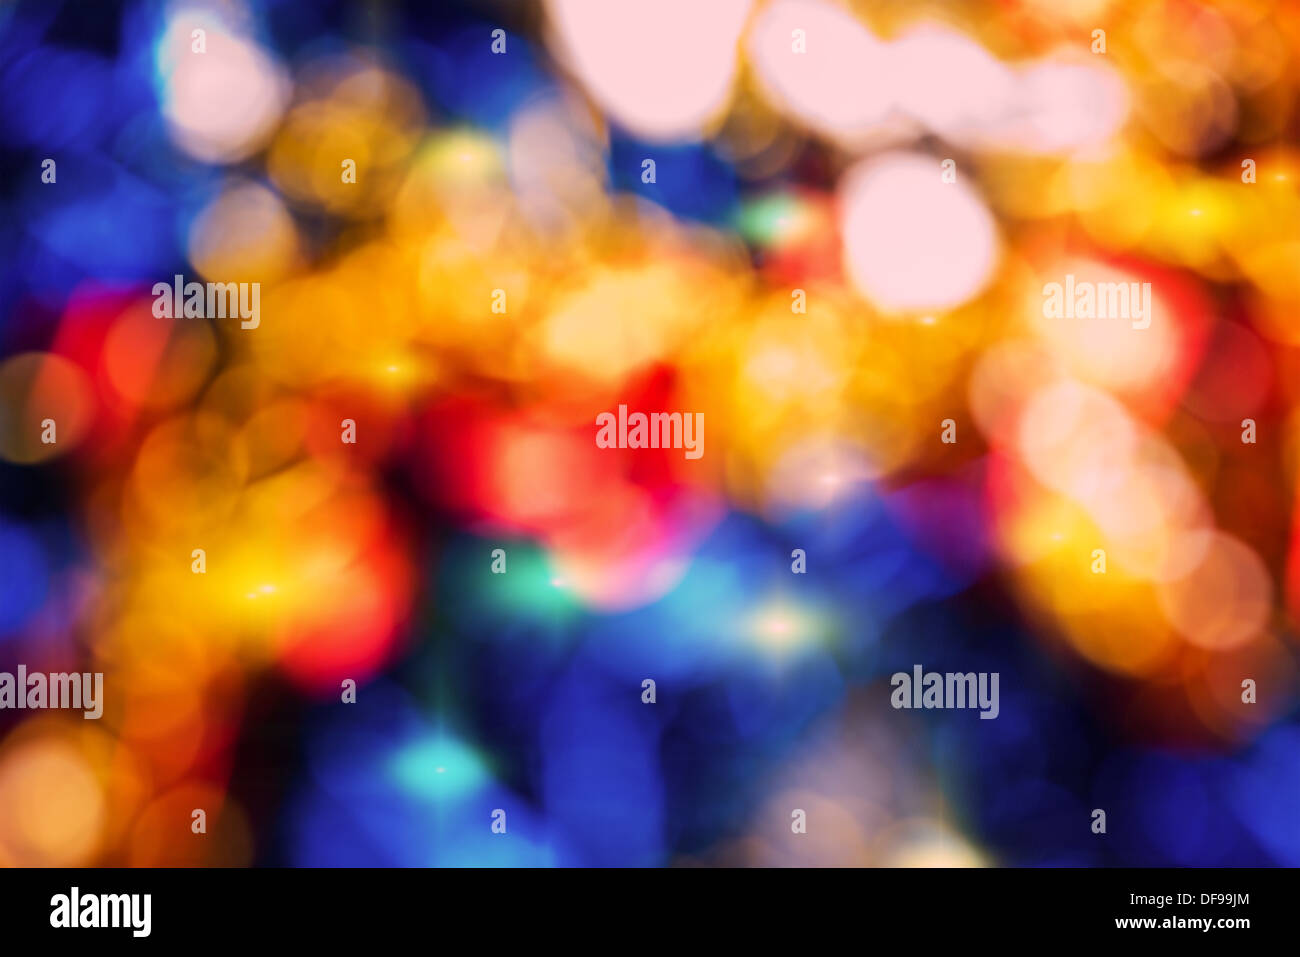 Blurred abstract background lights, beautiful Christmas - Stock Image